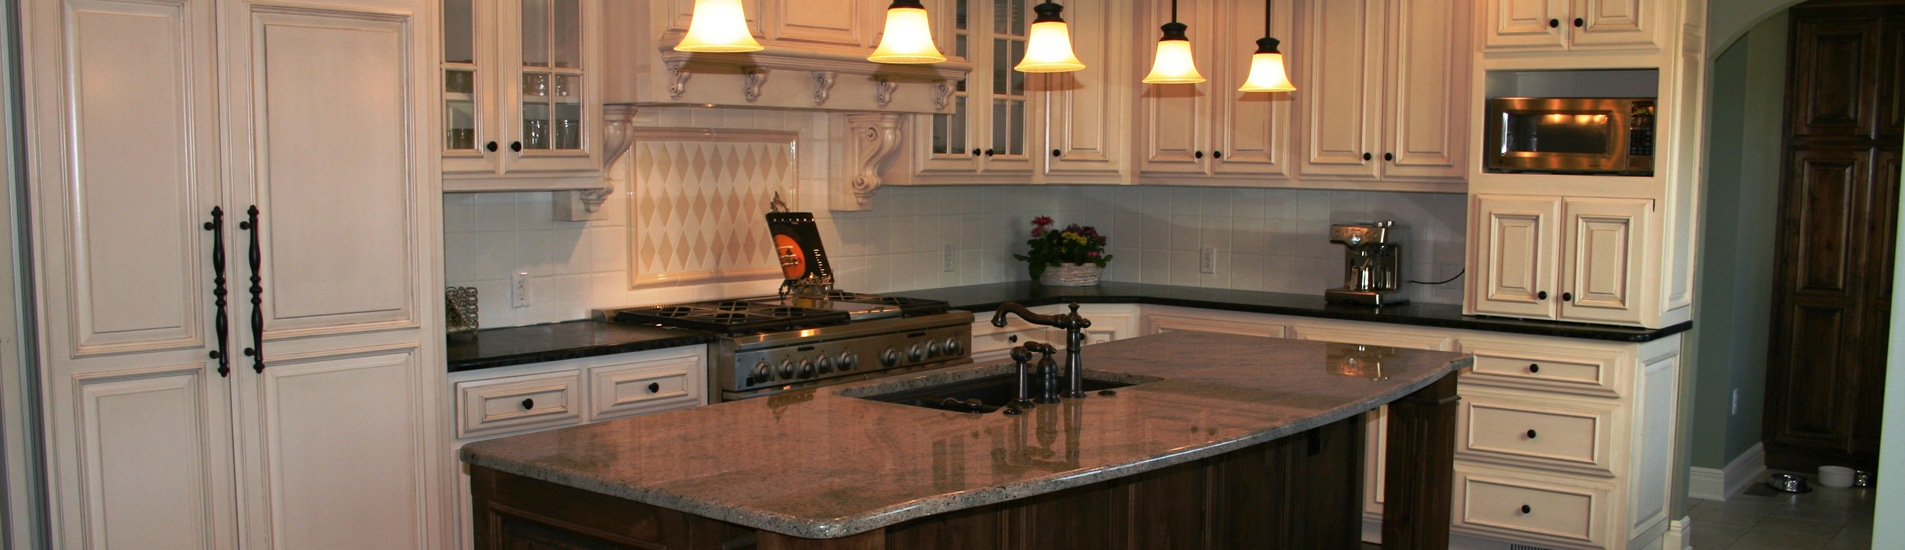 Kitchen Remodeling | Olathe, Overland Park, KS U0026 Kansas City Built By Design